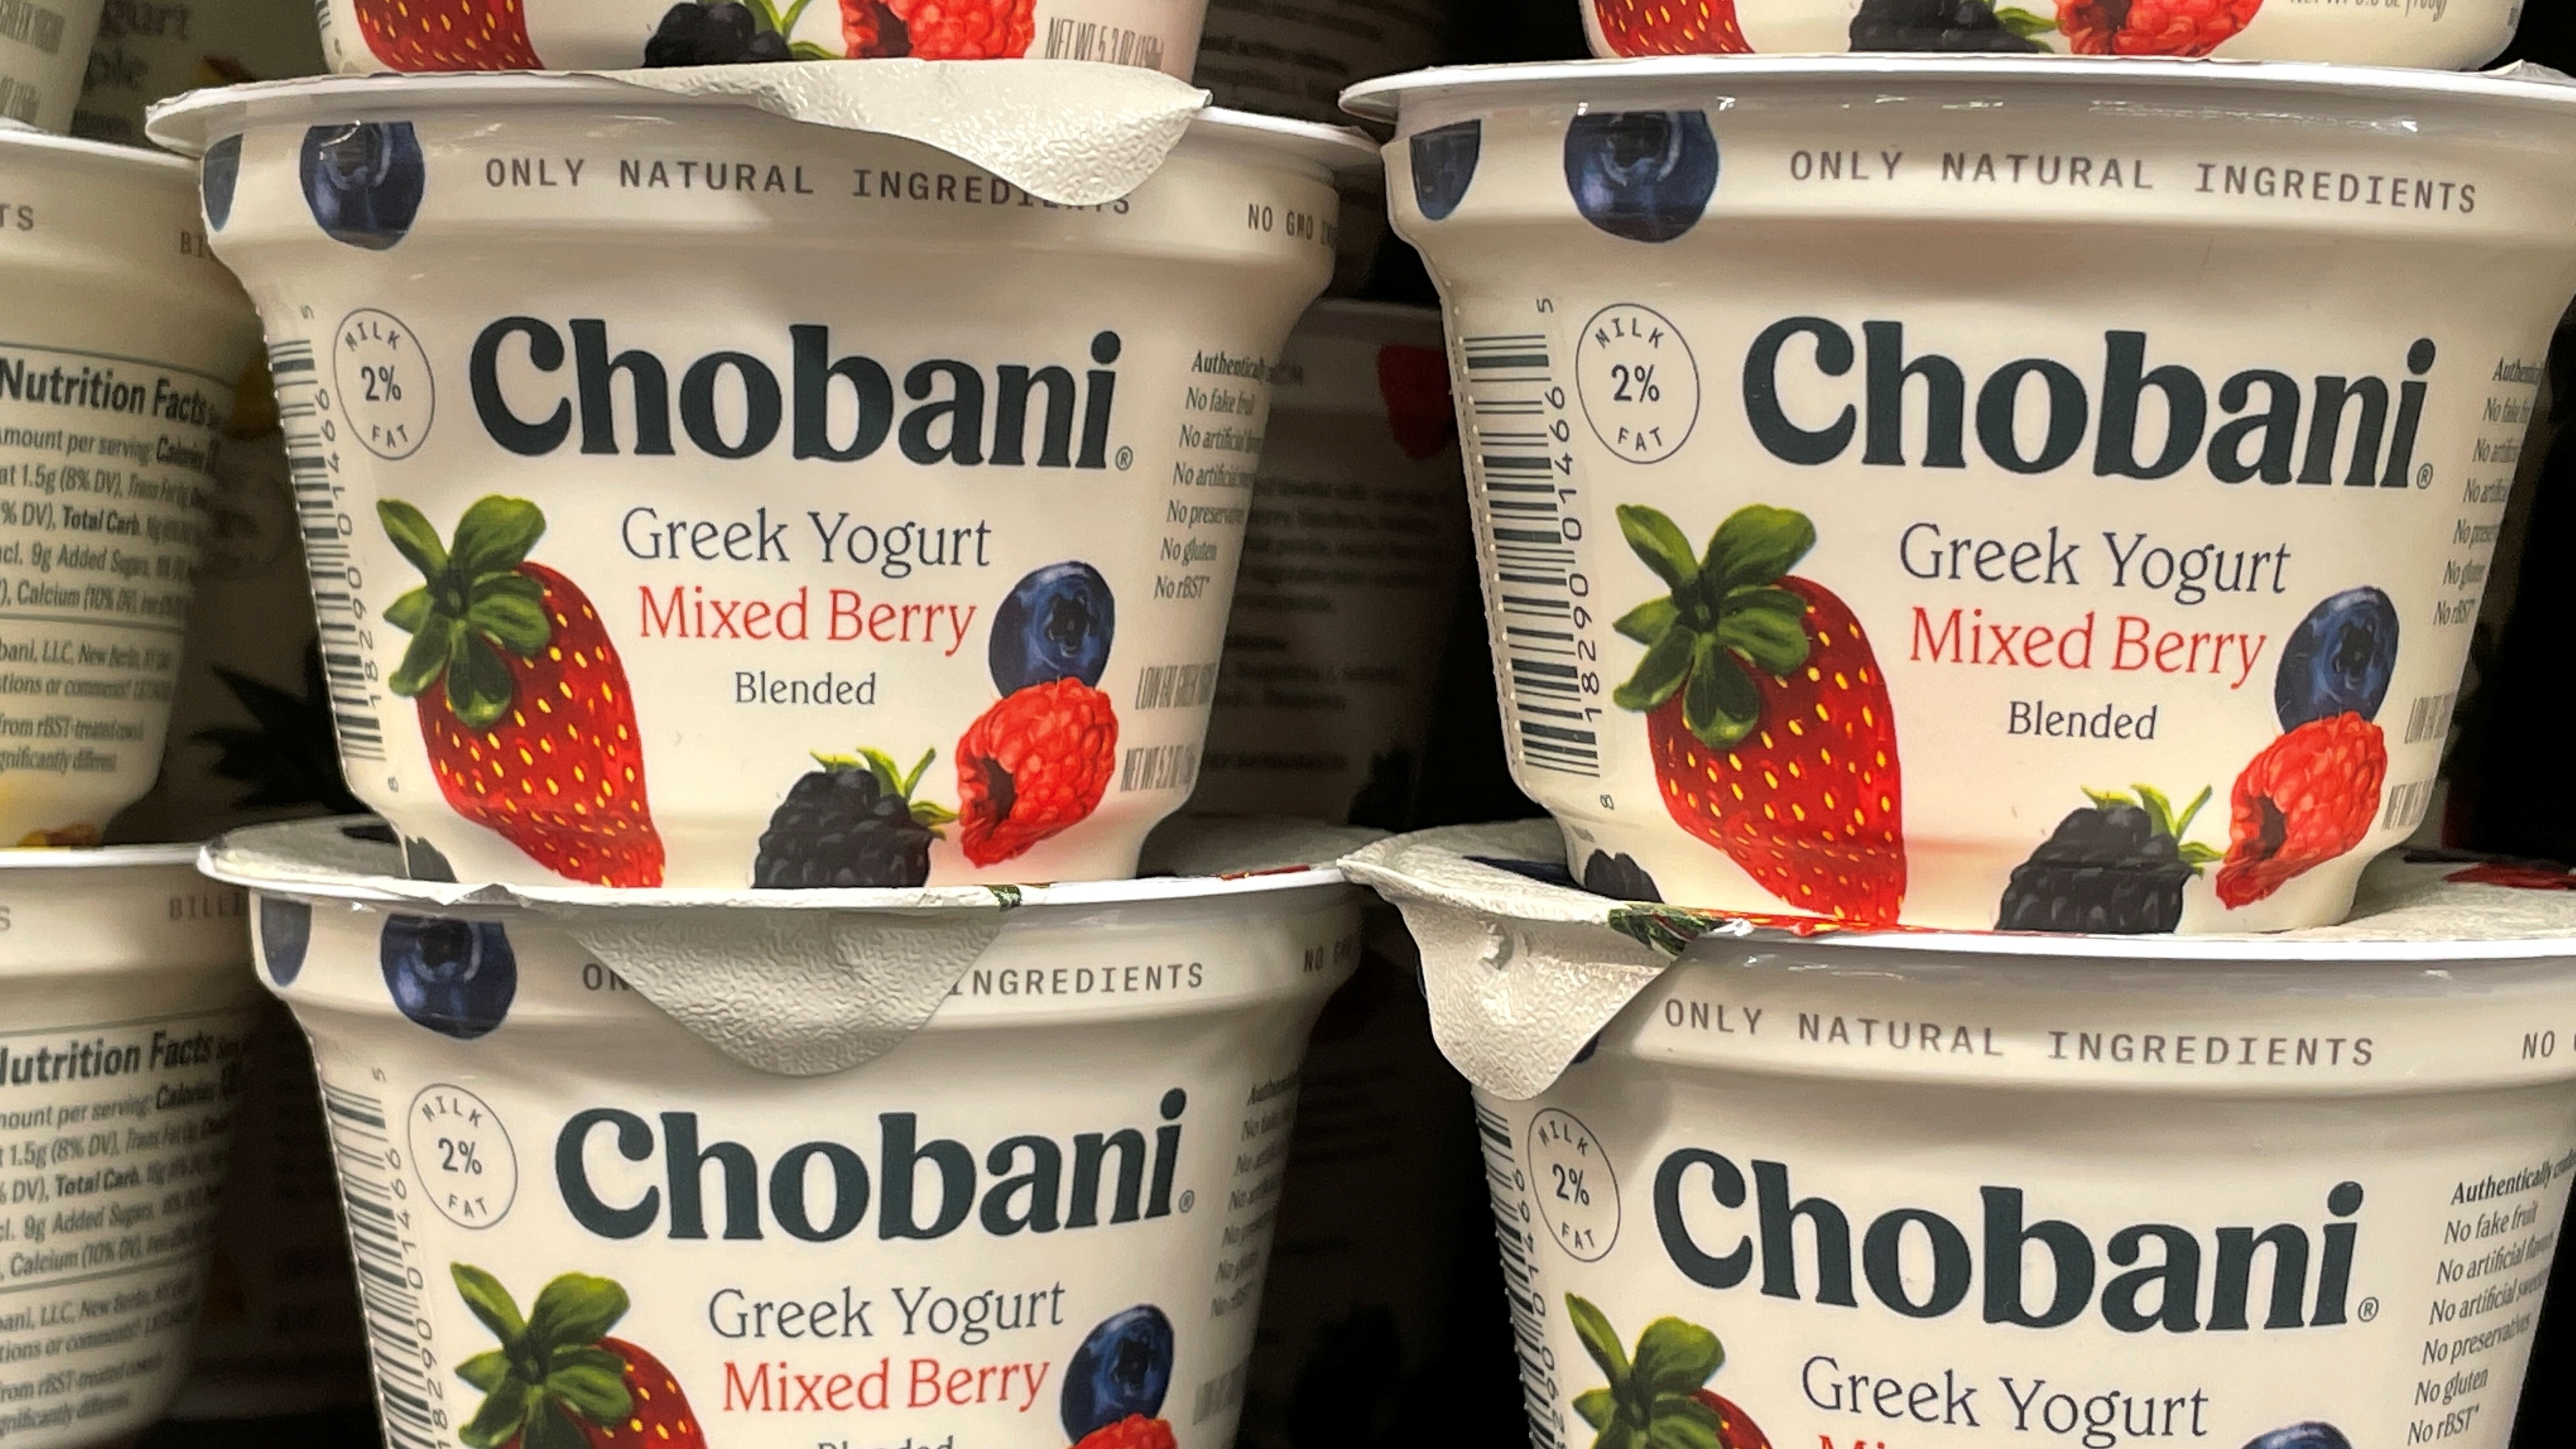 Greek-yogurt maker Chobani is shown for sale in a grocery store in San Diego, California. Greek-yogurt maker Chobani could be valued at more than $10 billion in its initial public offering (IPO), a person familiar with the matter told Reuters on Wednesday, as the company confidentially filed regulatory paperwork for its stock market listing. July 07, 2021.  REUTERS/Mike Blake